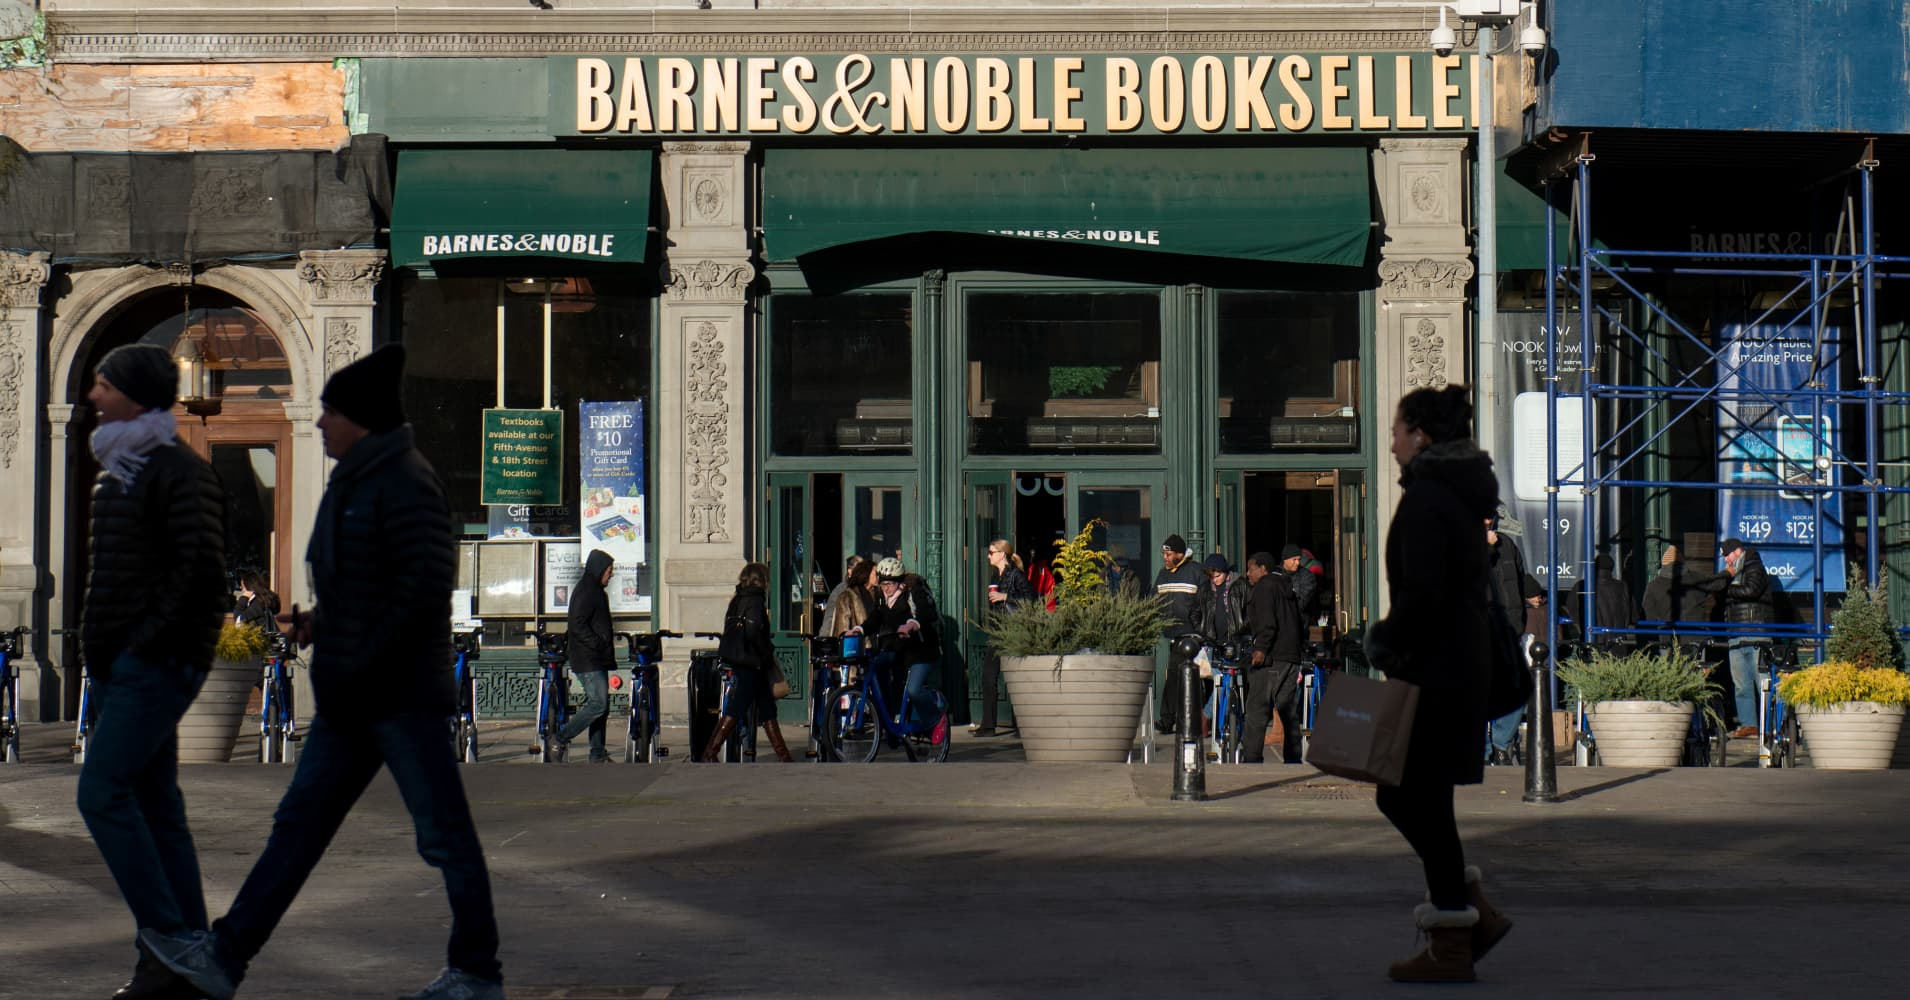 Barnes & Noble says sales of books related to anxiety are soaring